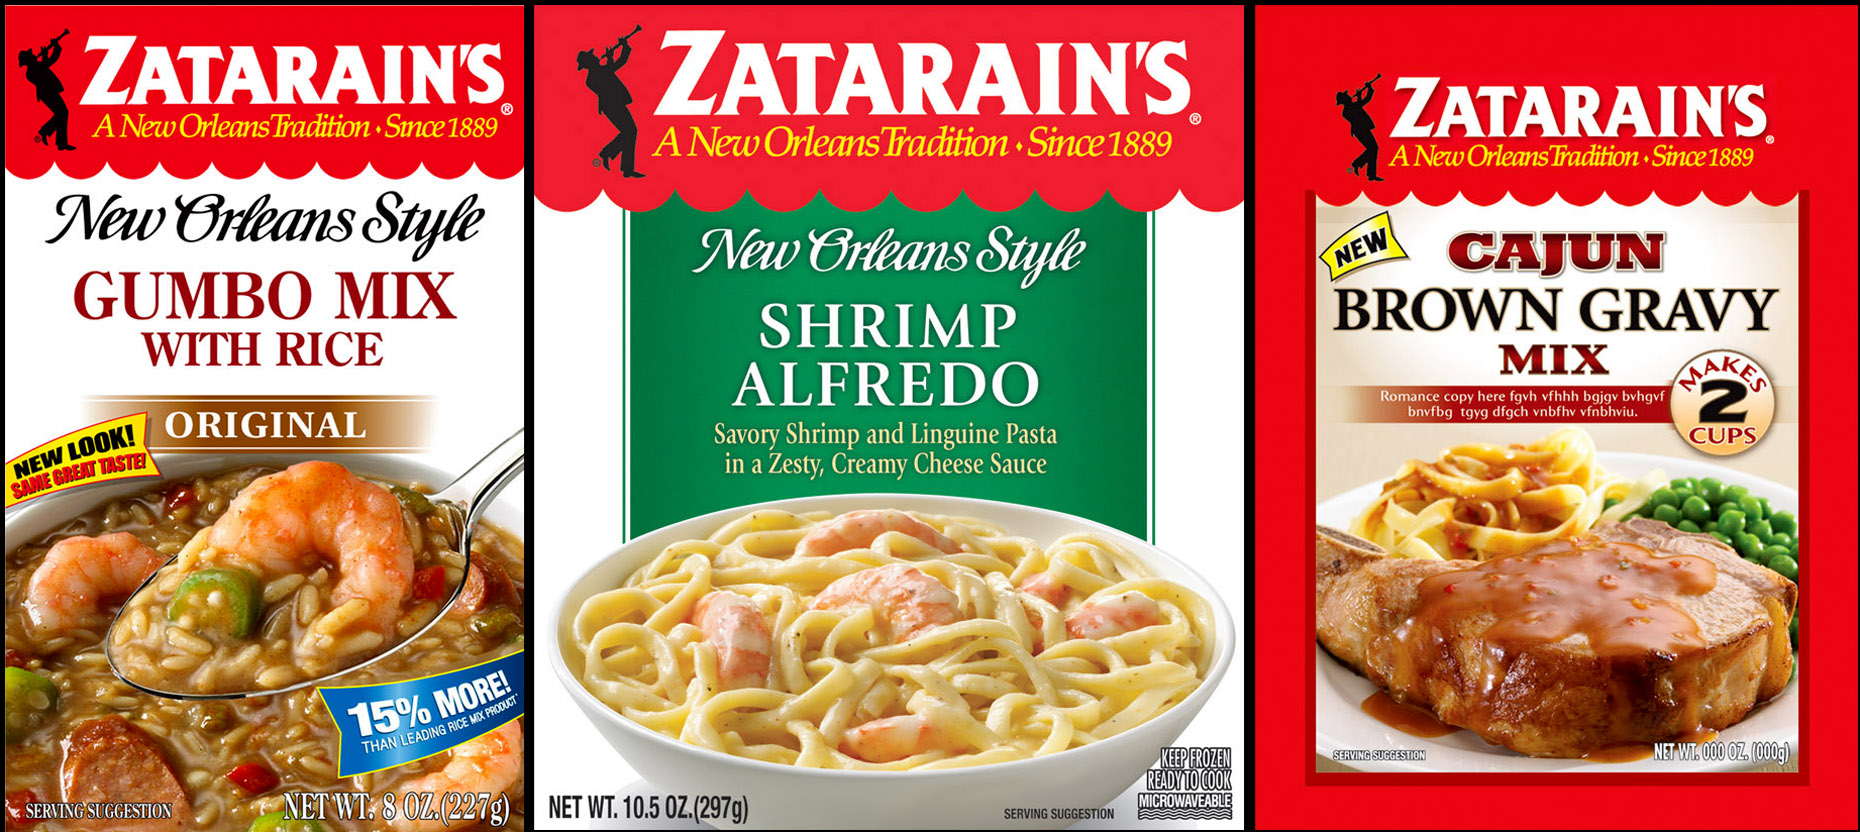 Zatarains_McCormick_Food Packaging Photography_Food Photograpy